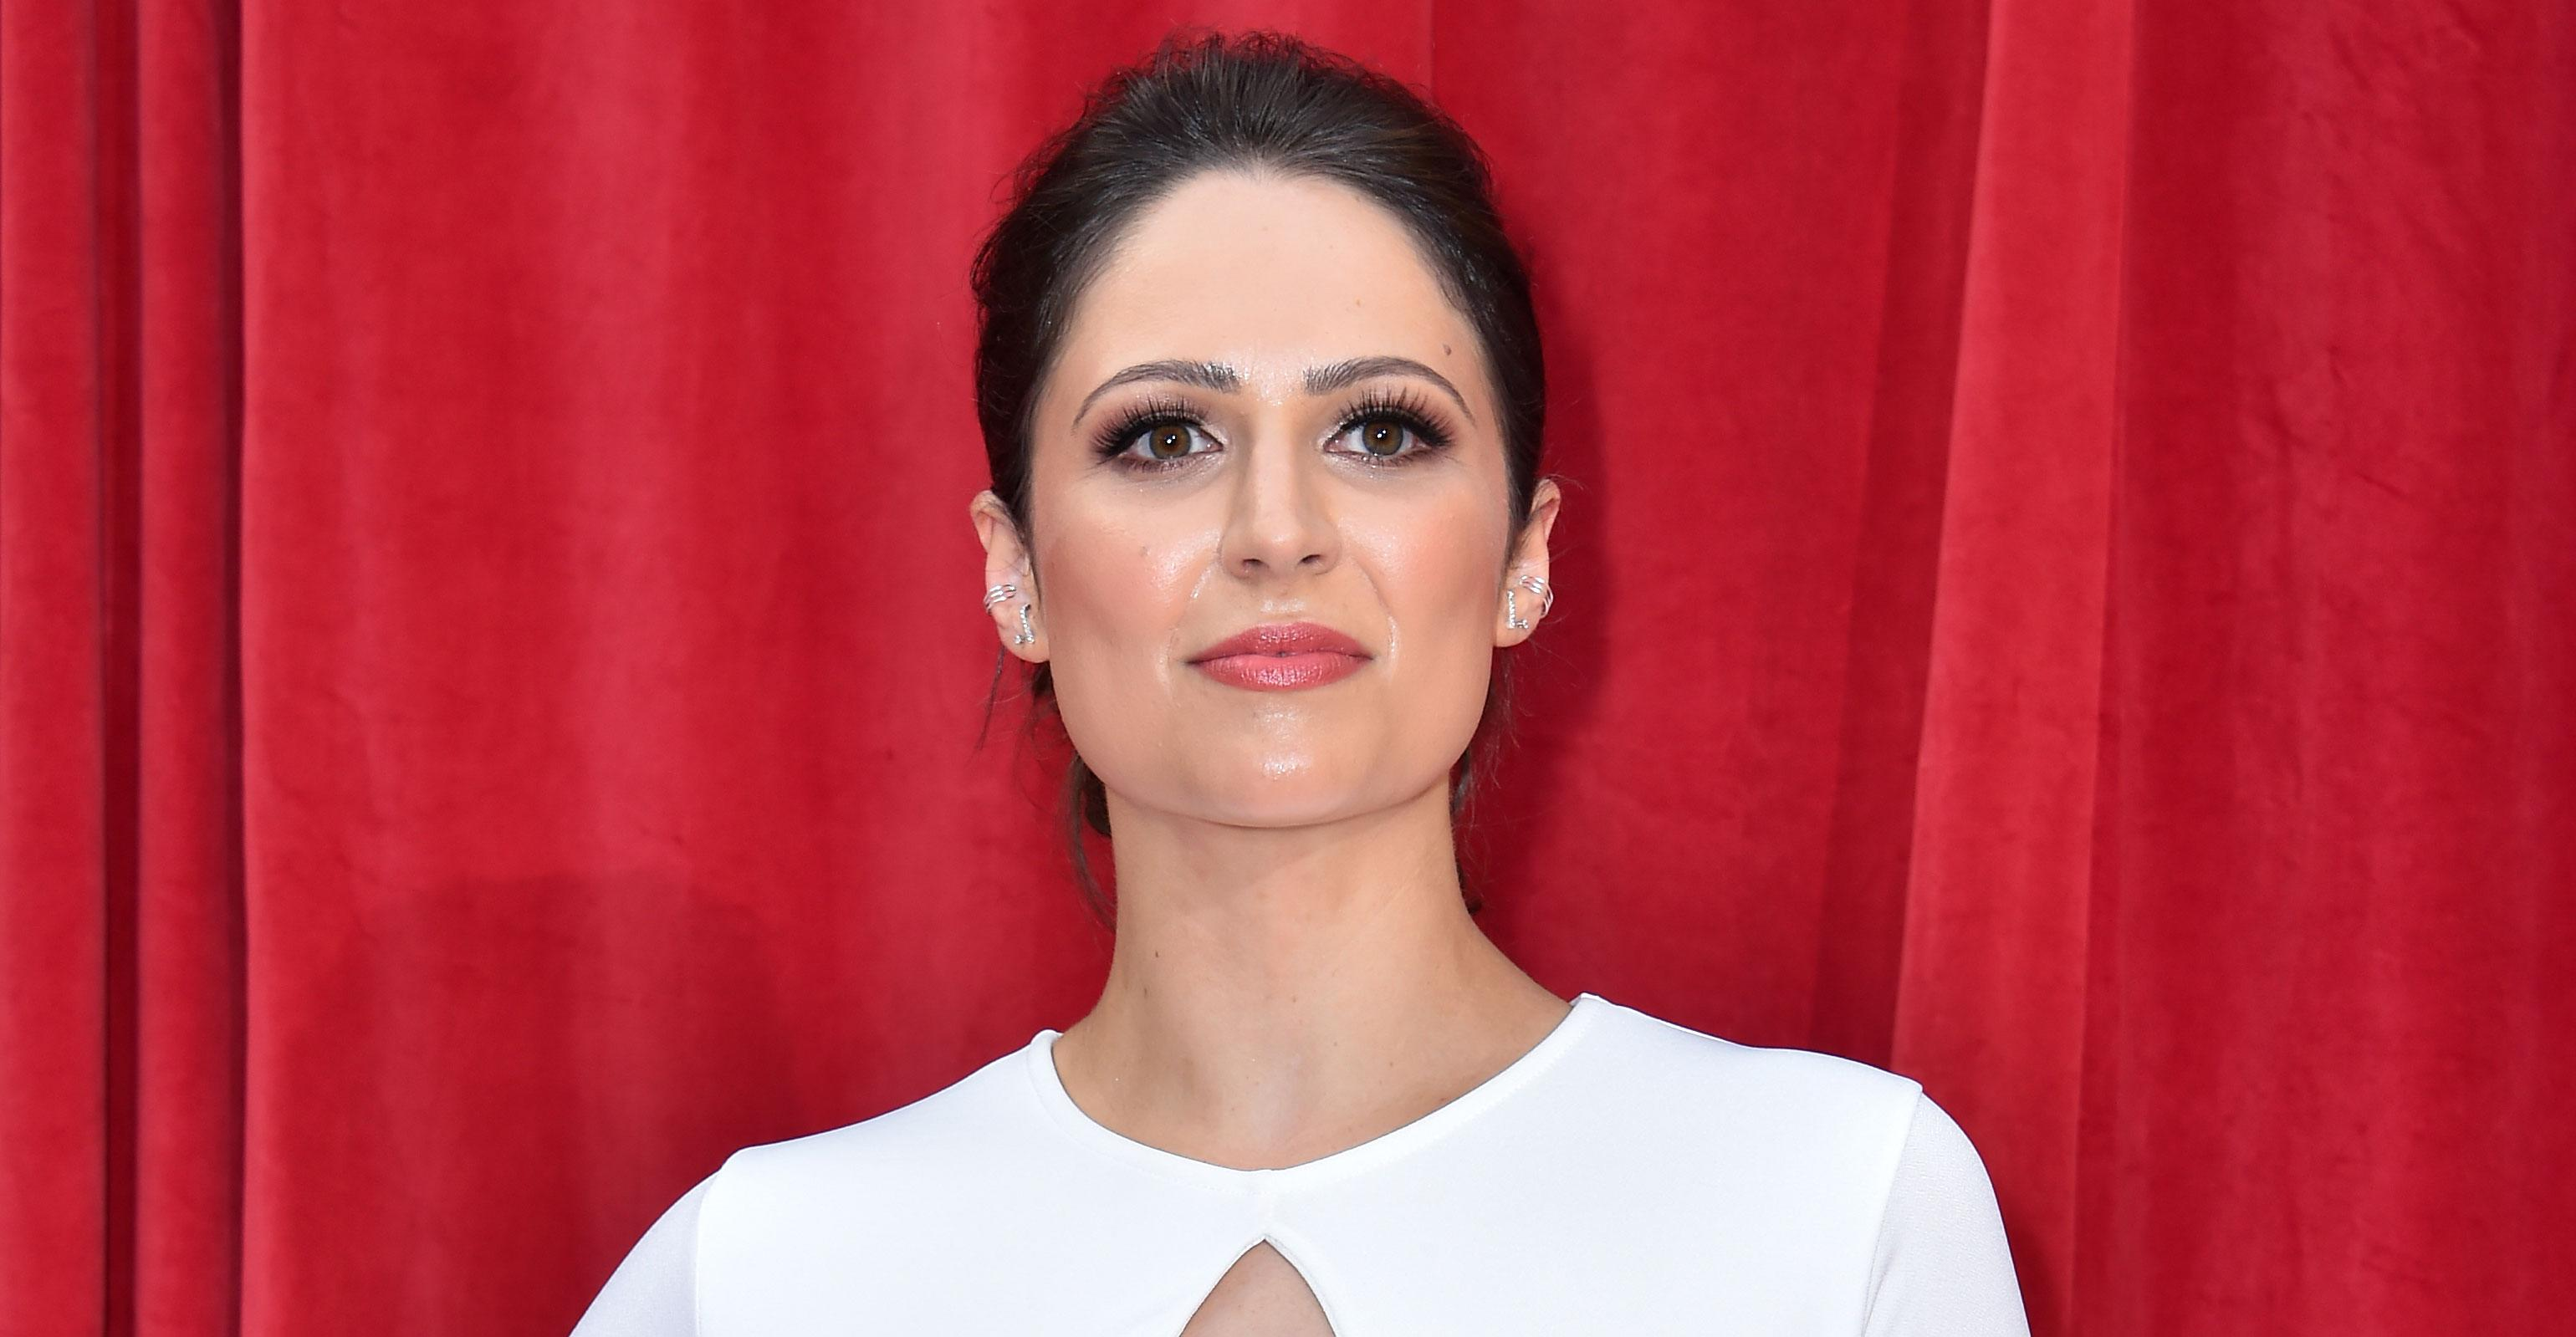 Amanda Abbington Sexy corrie actress nicola thorp says she was 'hassled for sex